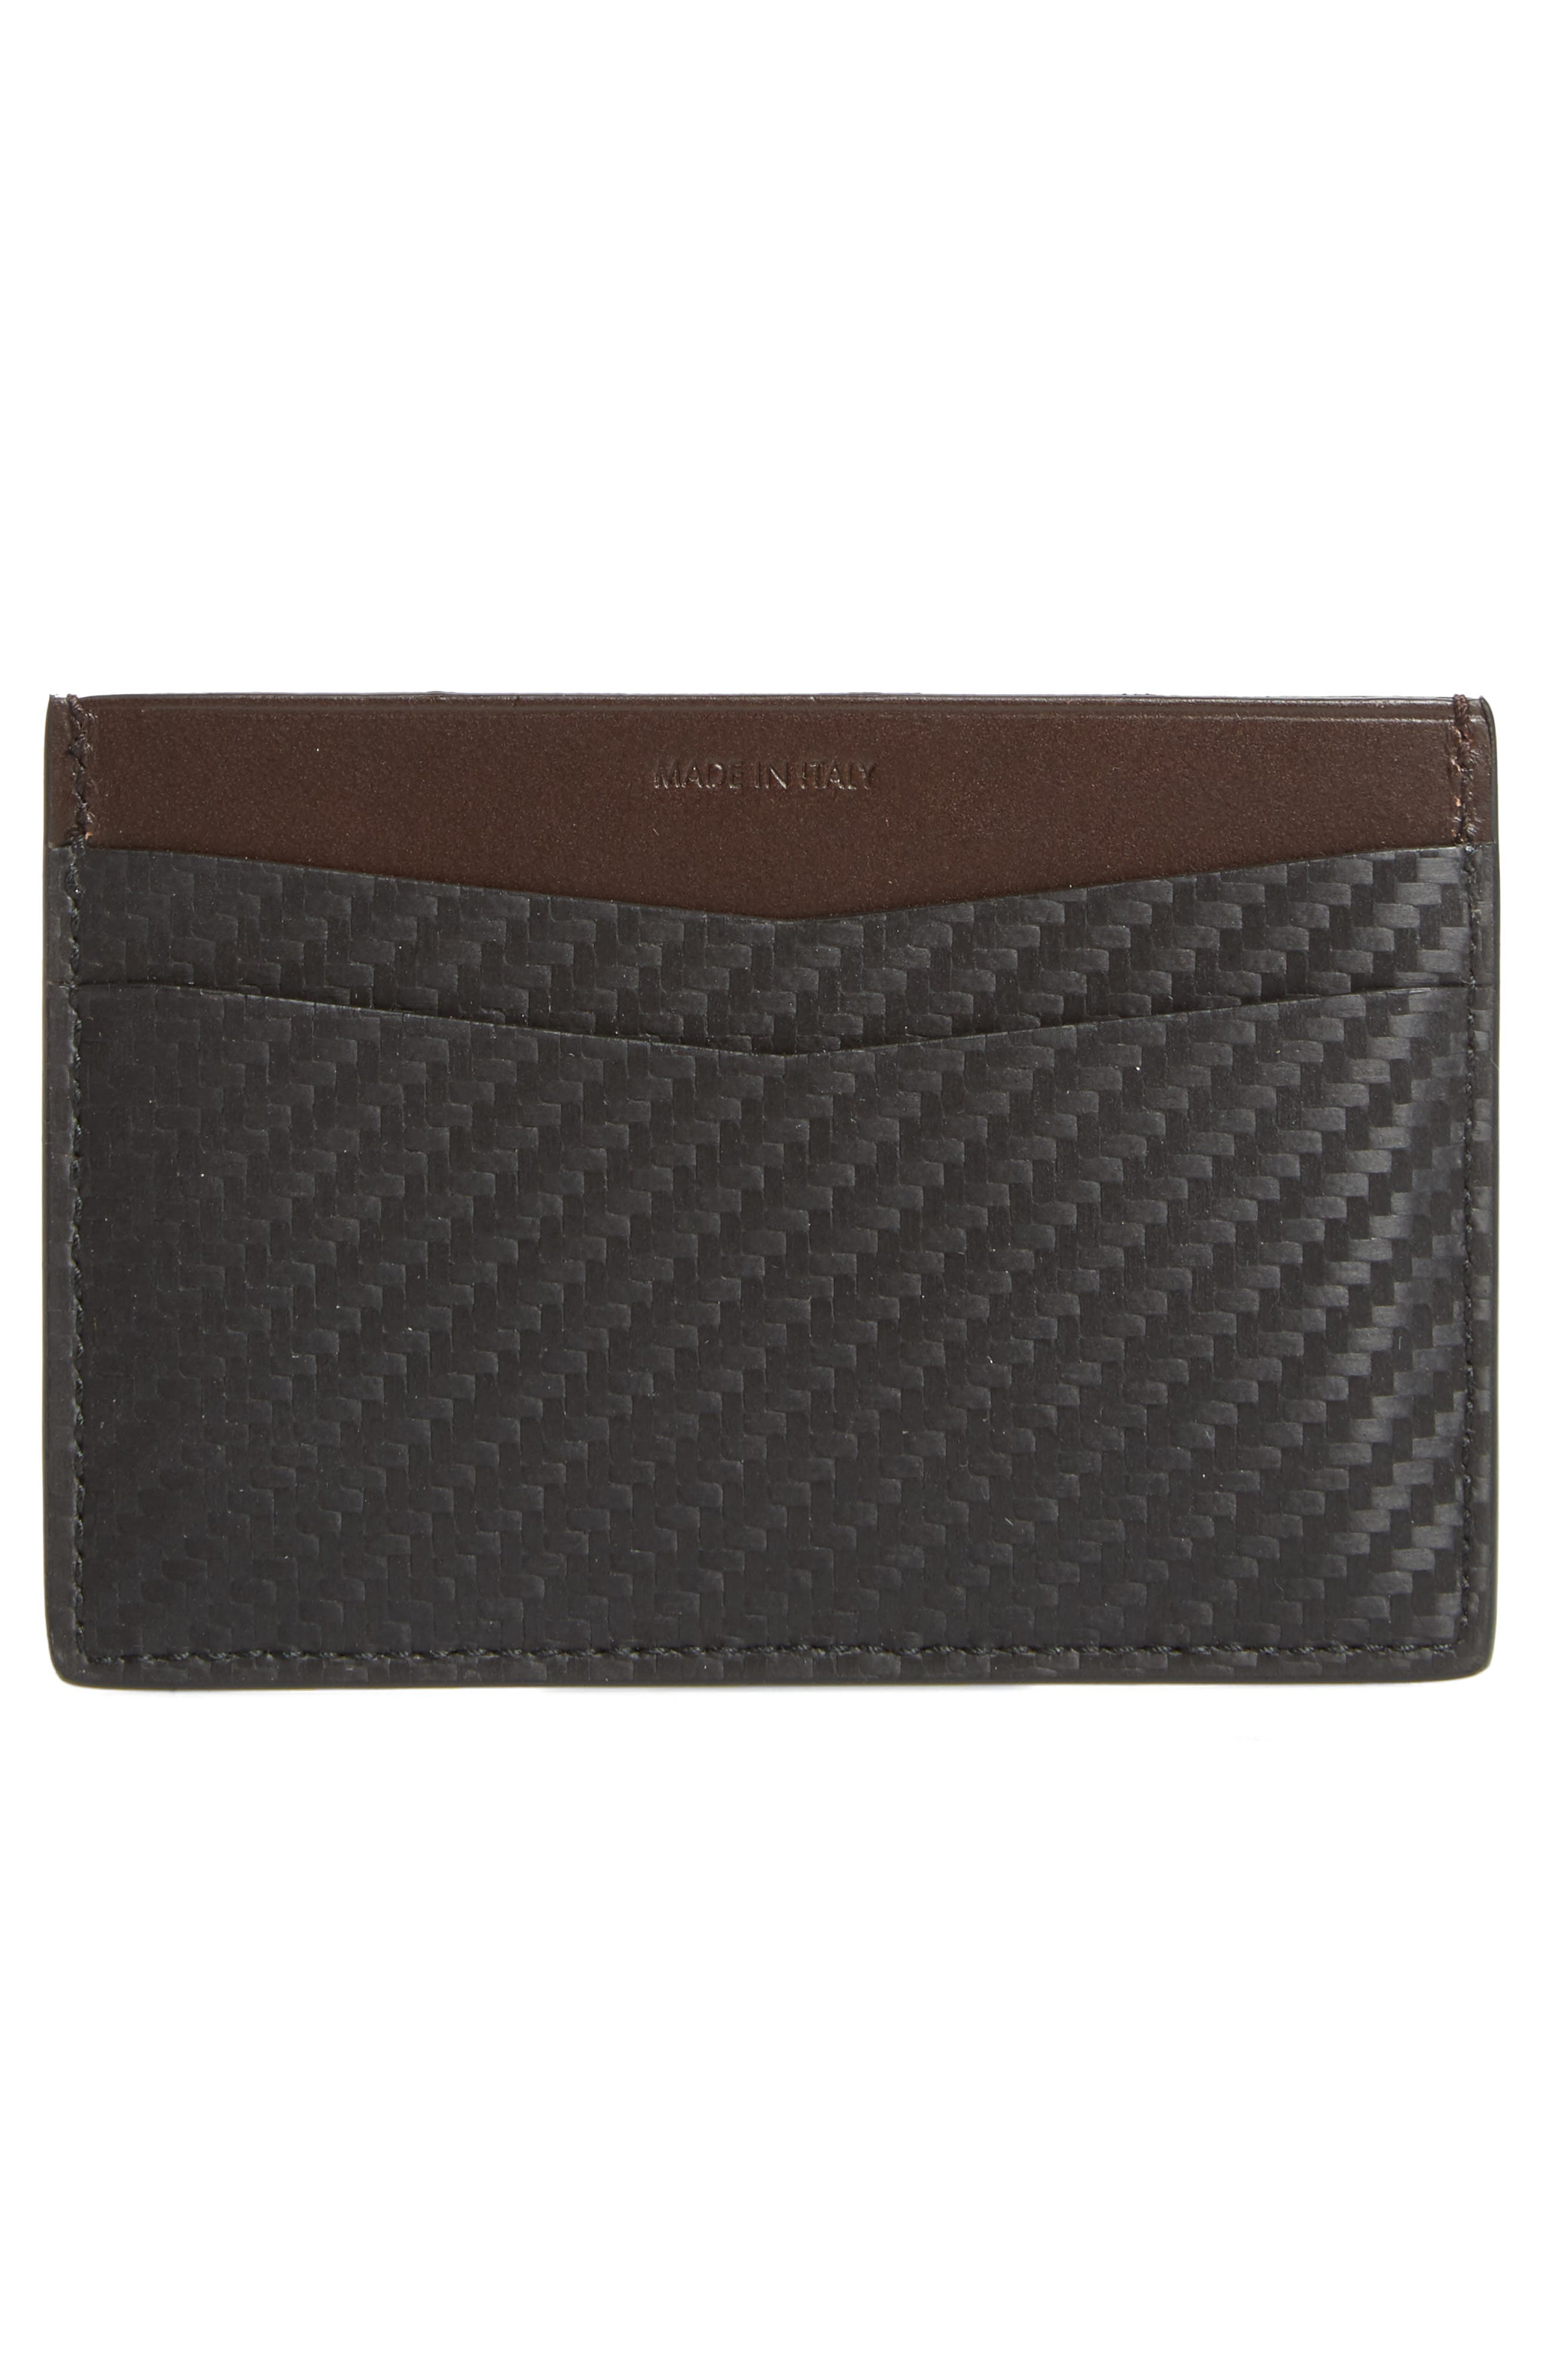 Chassis Leather Card Case,                             Alternate thumbnail 2, color,                             Black